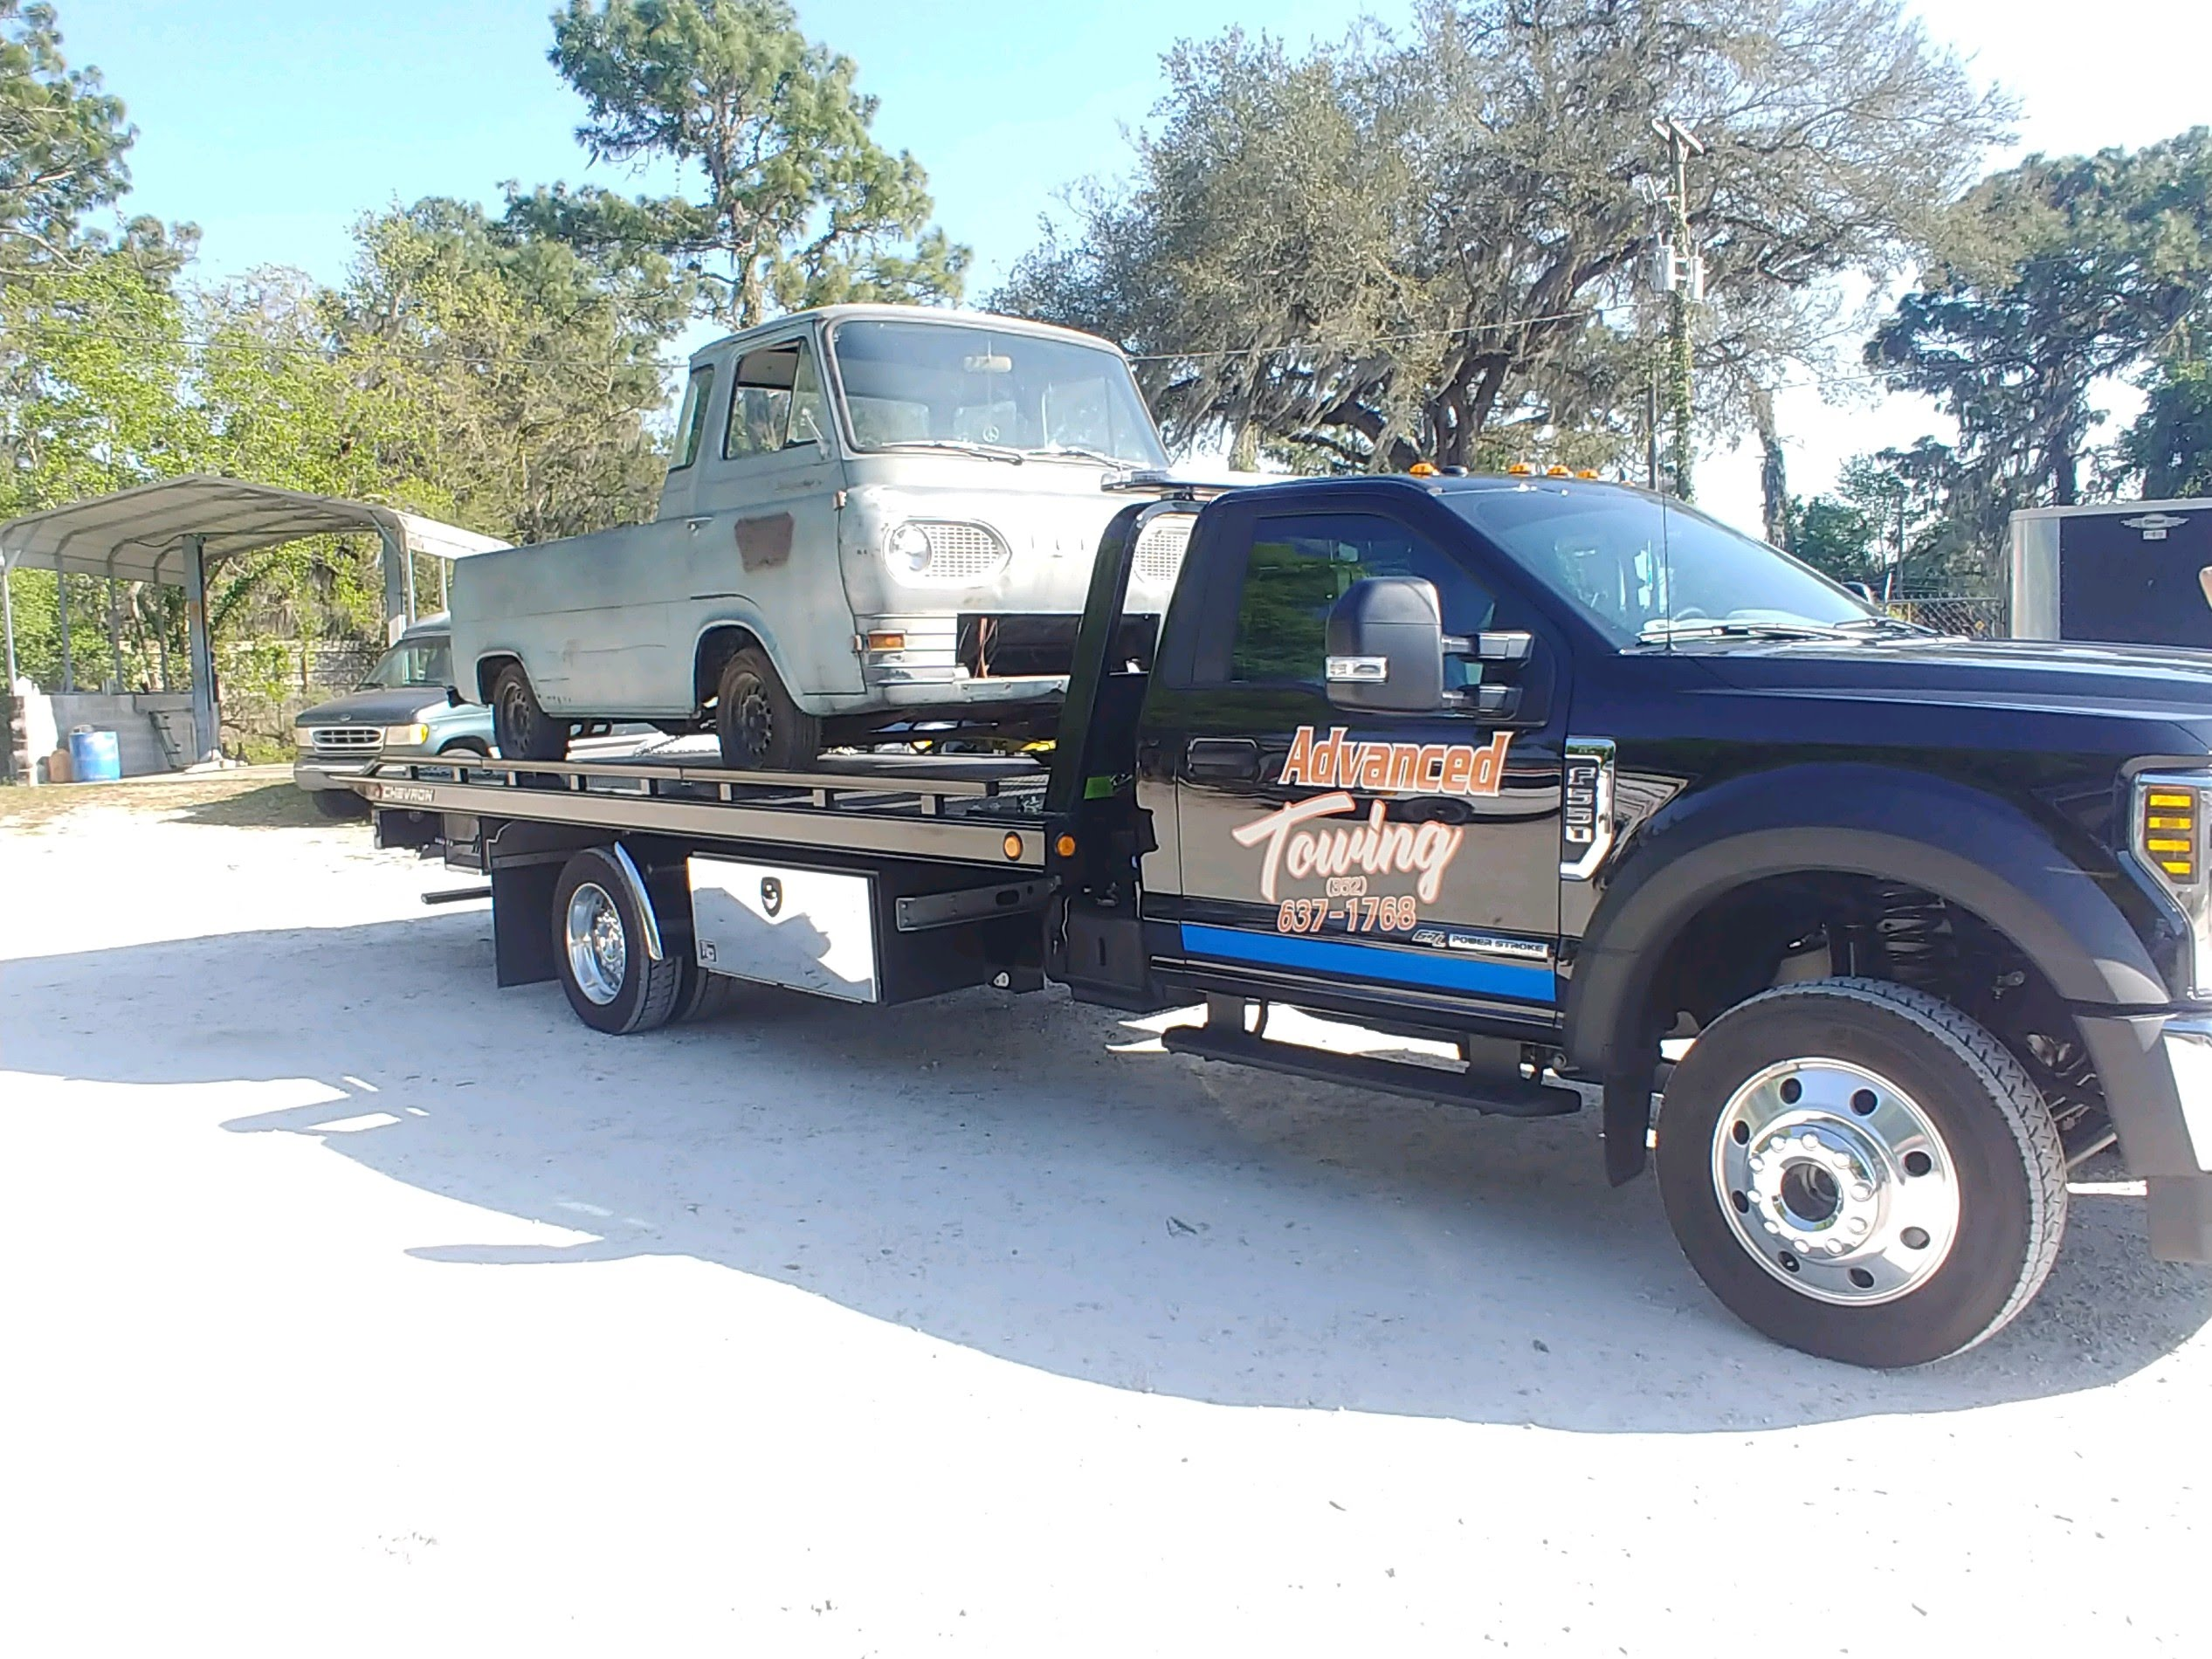 Advanced Towing image 42